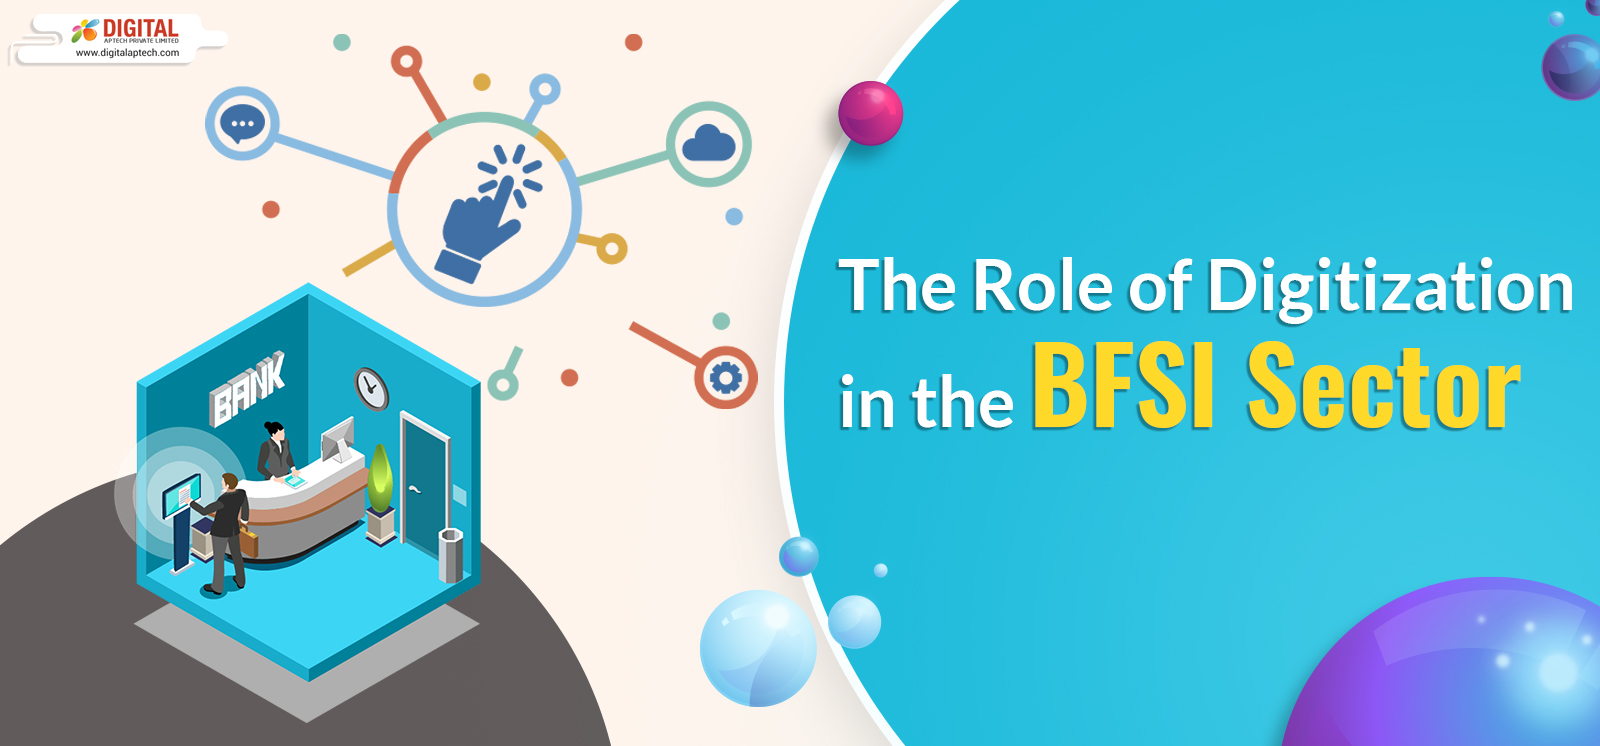 Role of Digitization in BFSI sector